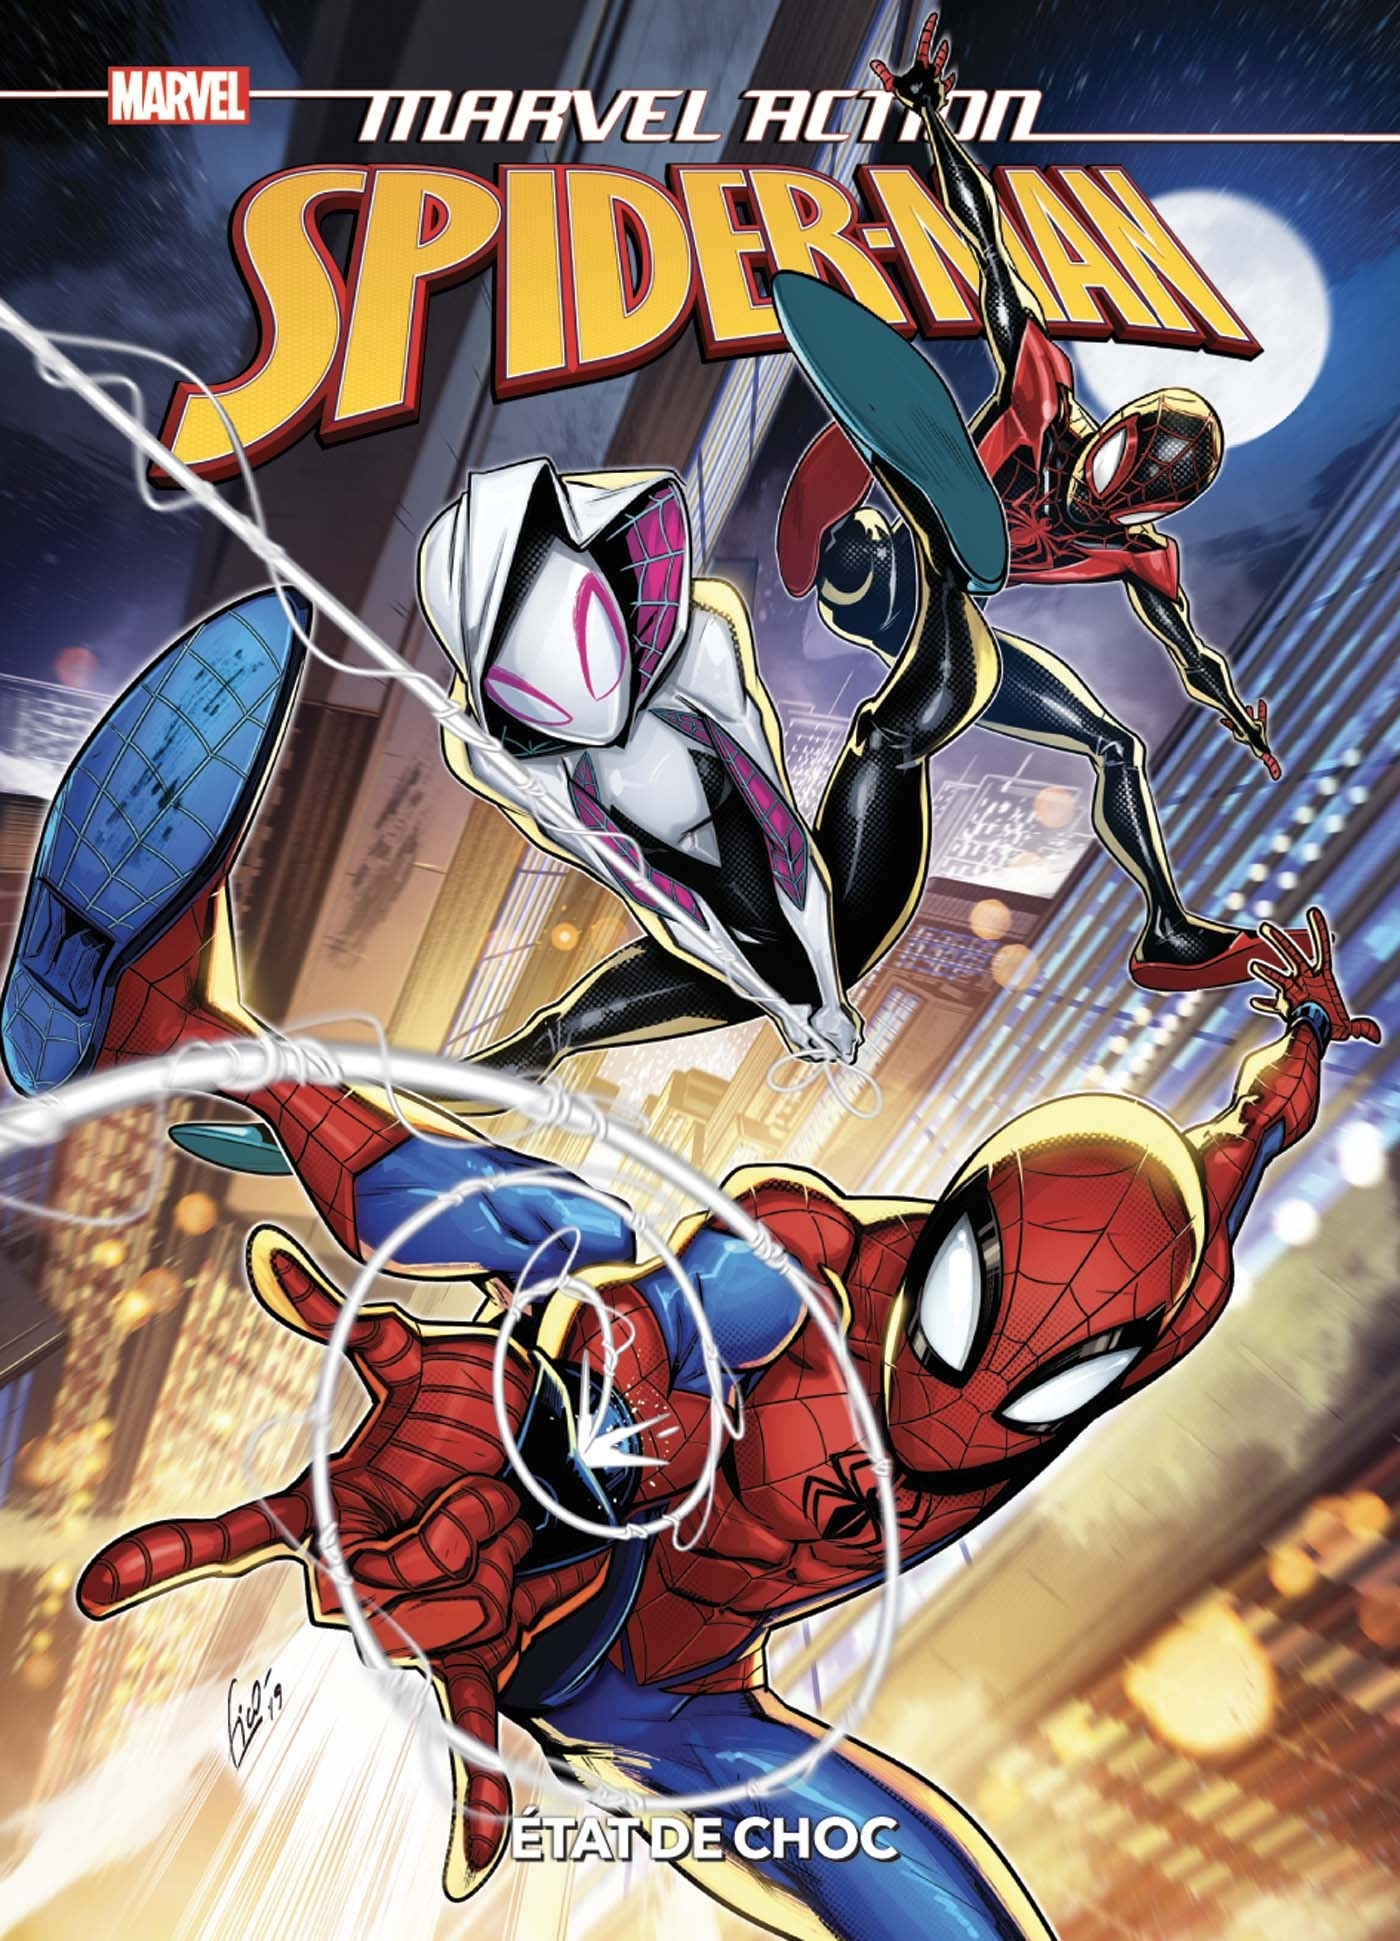 MARVEL ACTION - SPIDER-MAN: ETAT DE CHOC